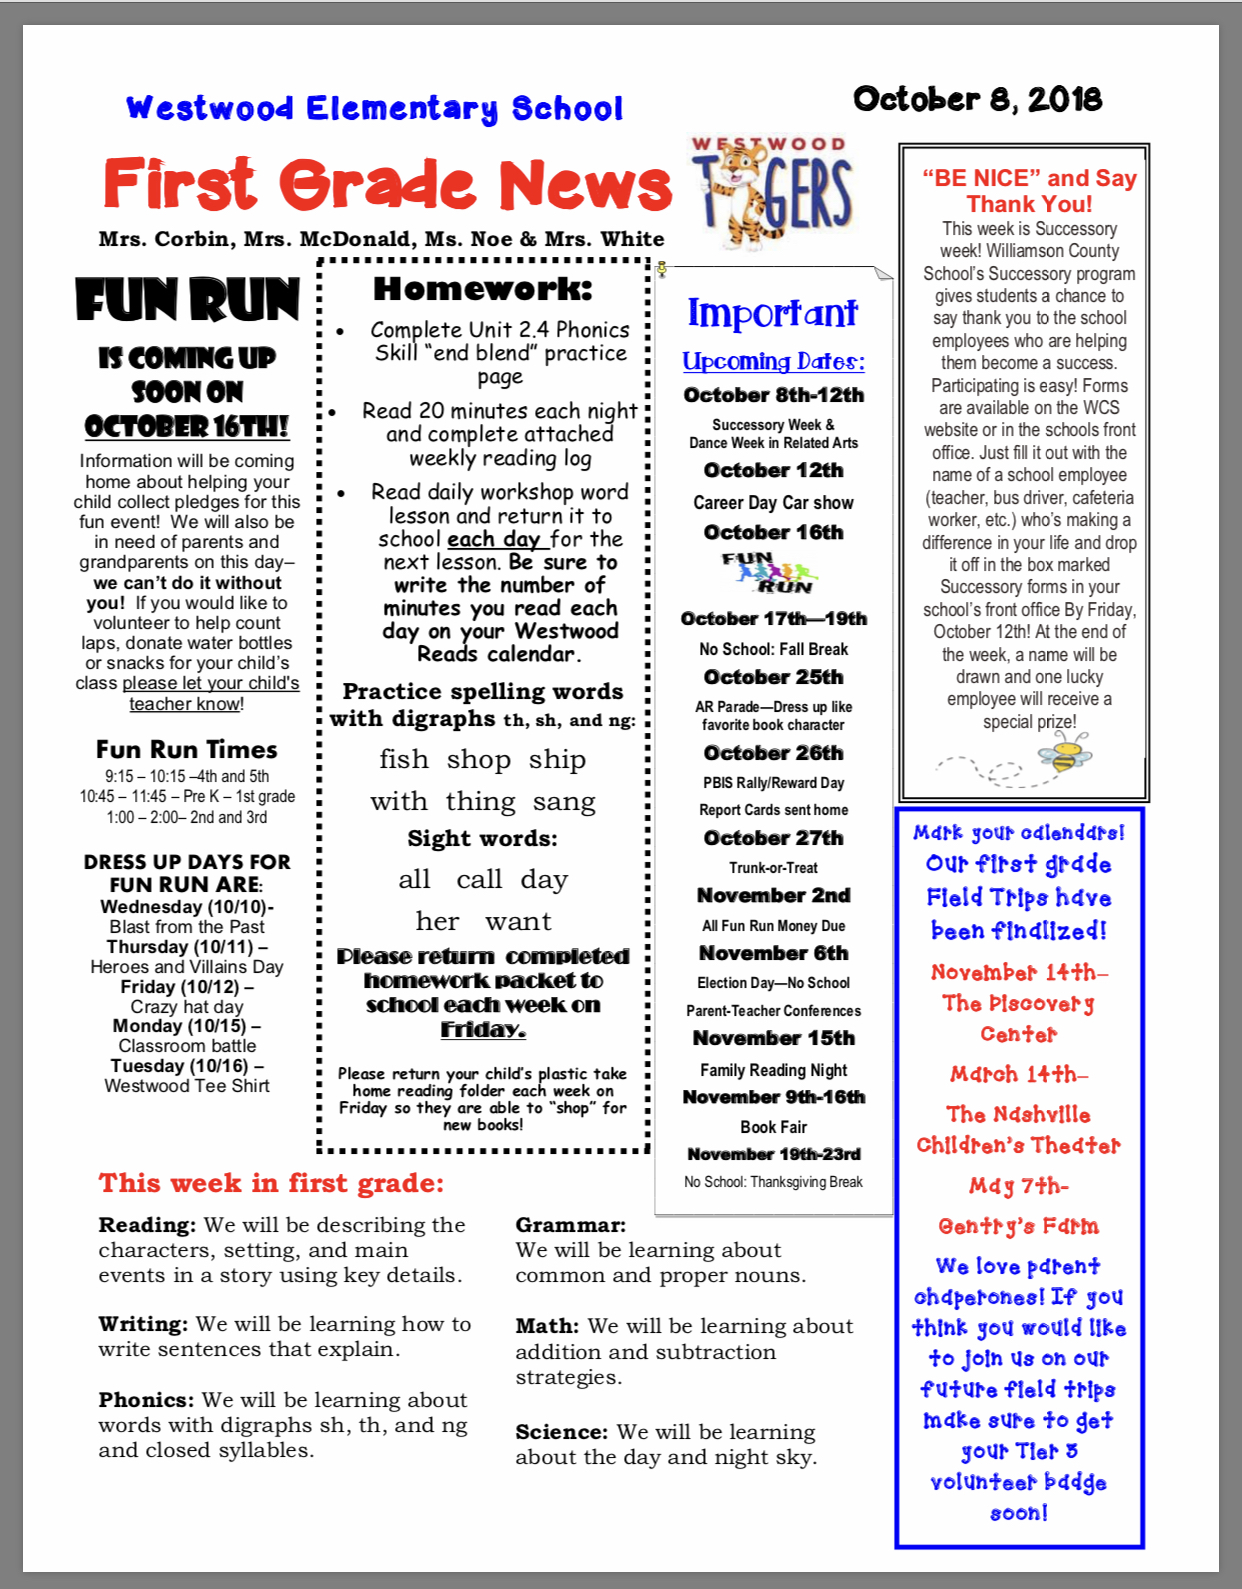 First Grade Newsletter paper copy available in office